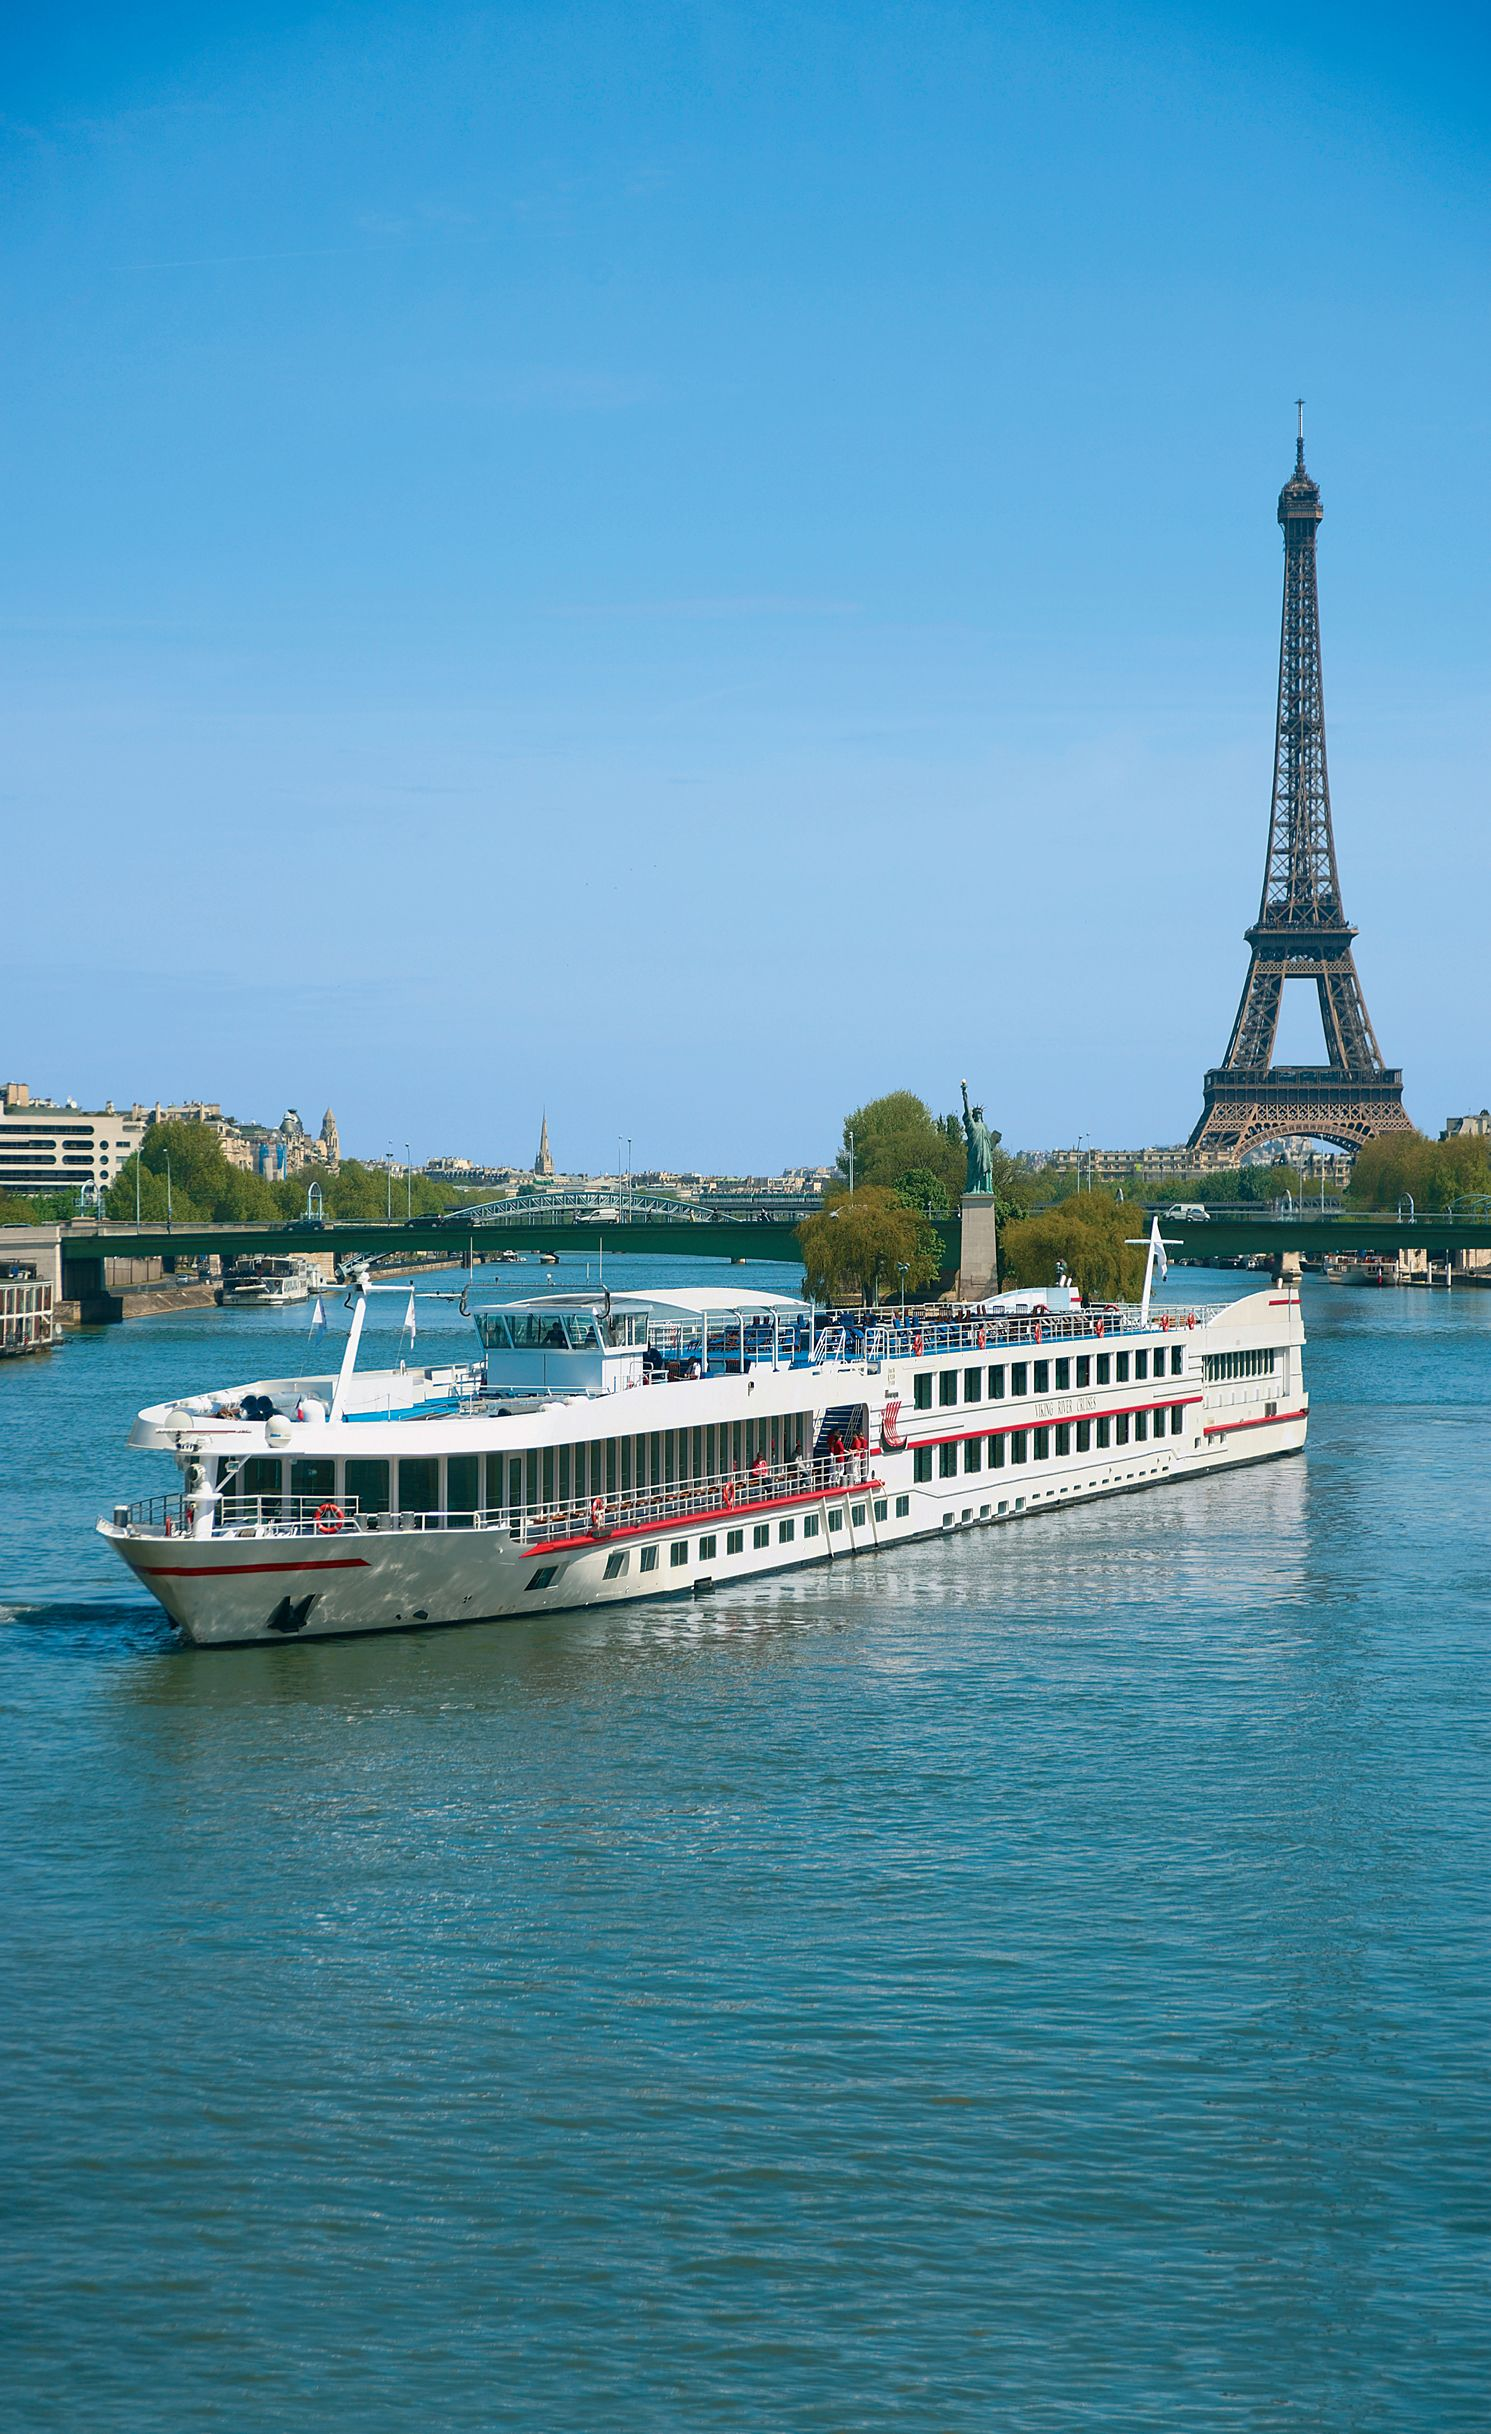 Viking is to river cruising, as the Eiffel Tower is to Paris...